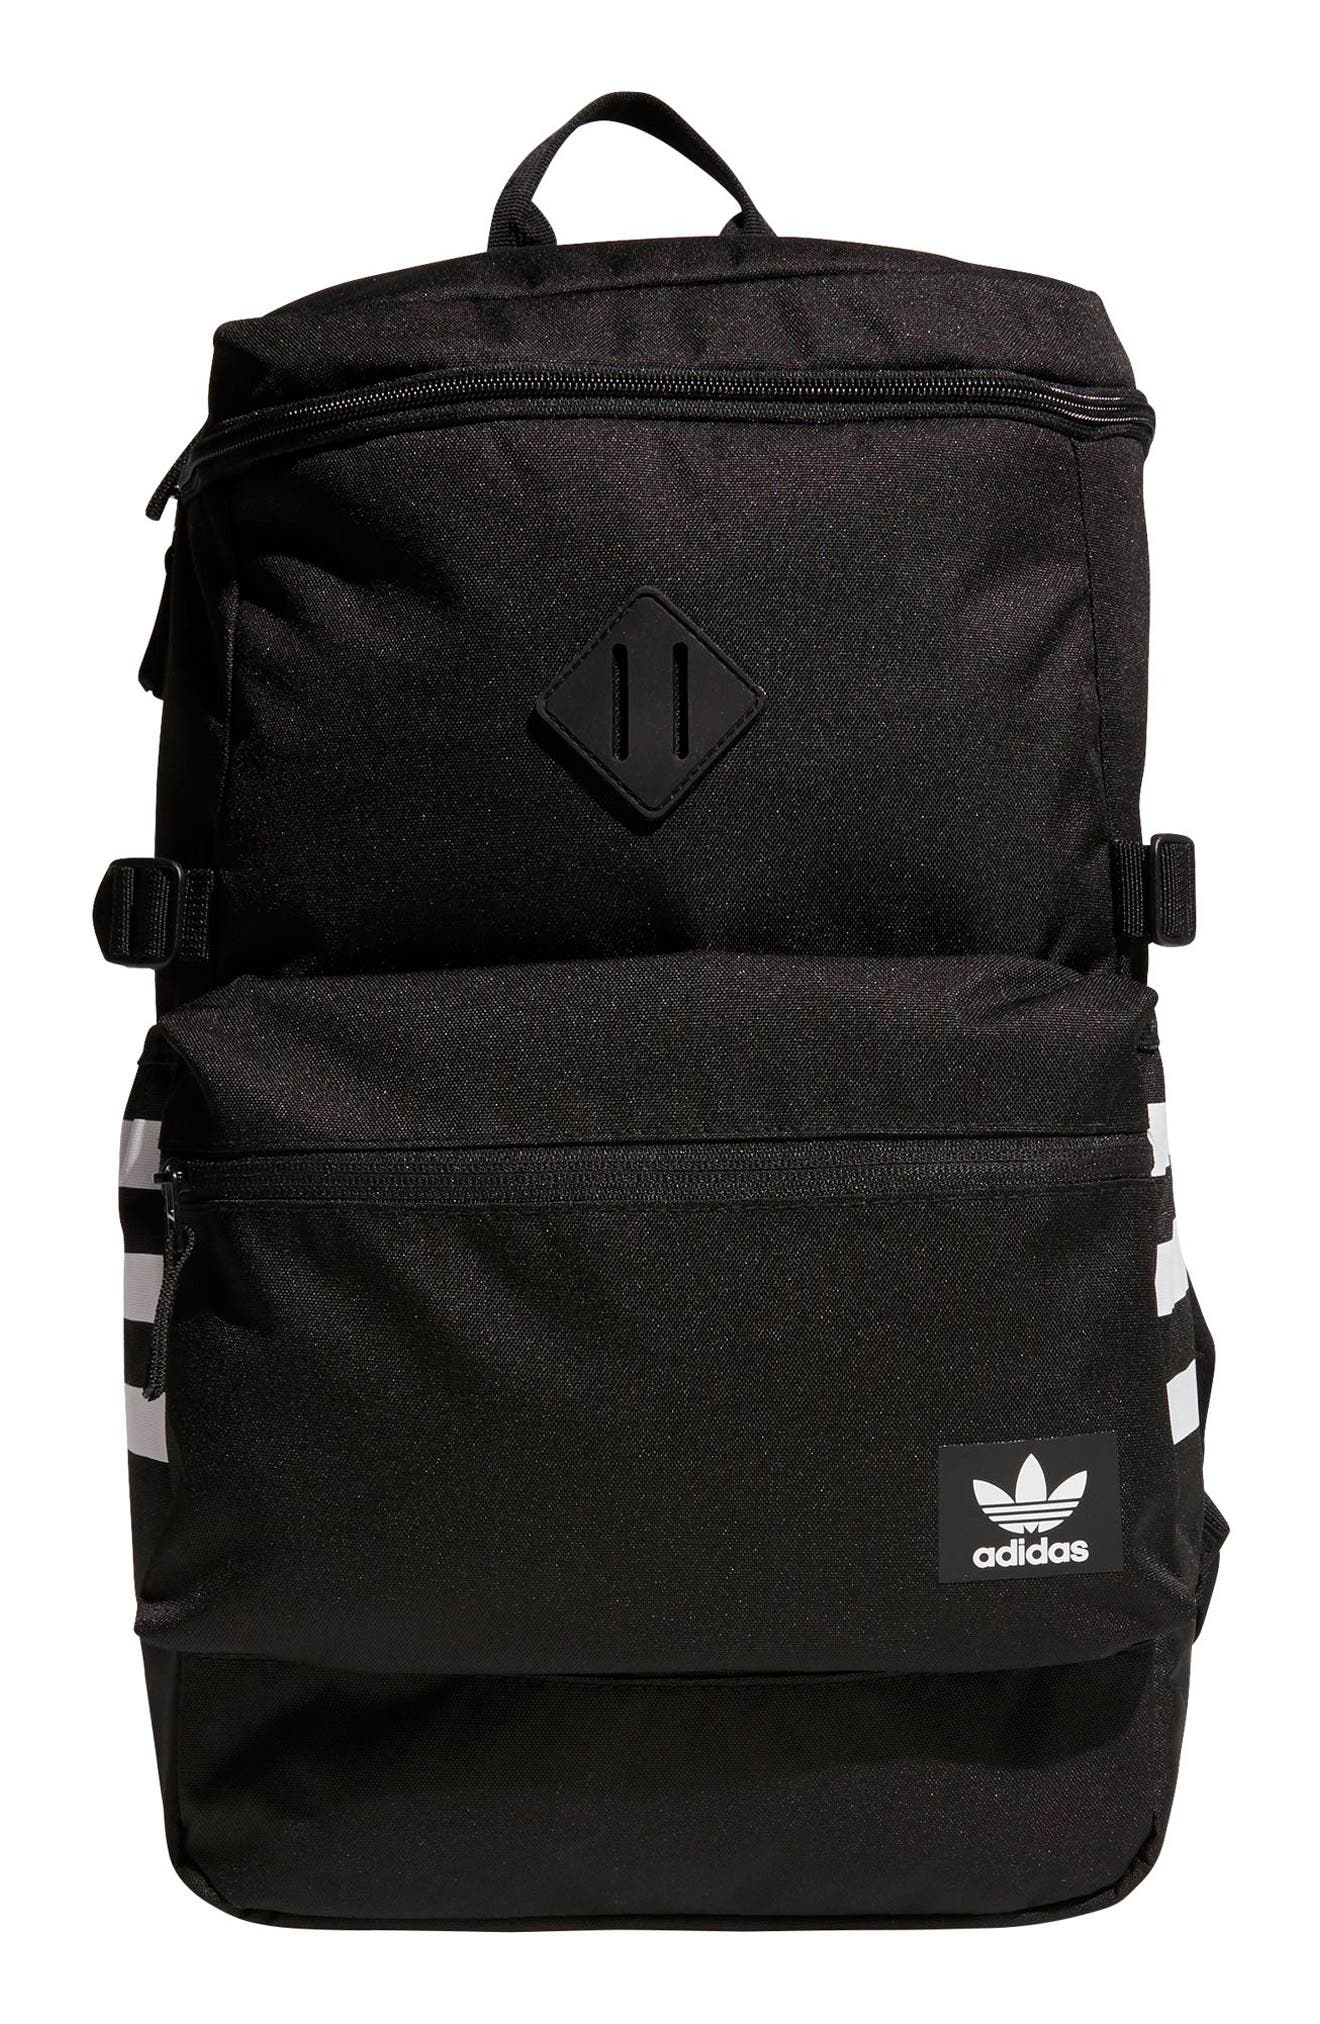 Originals Tote Pack II Backpack,                         Main,                         color, BLACK